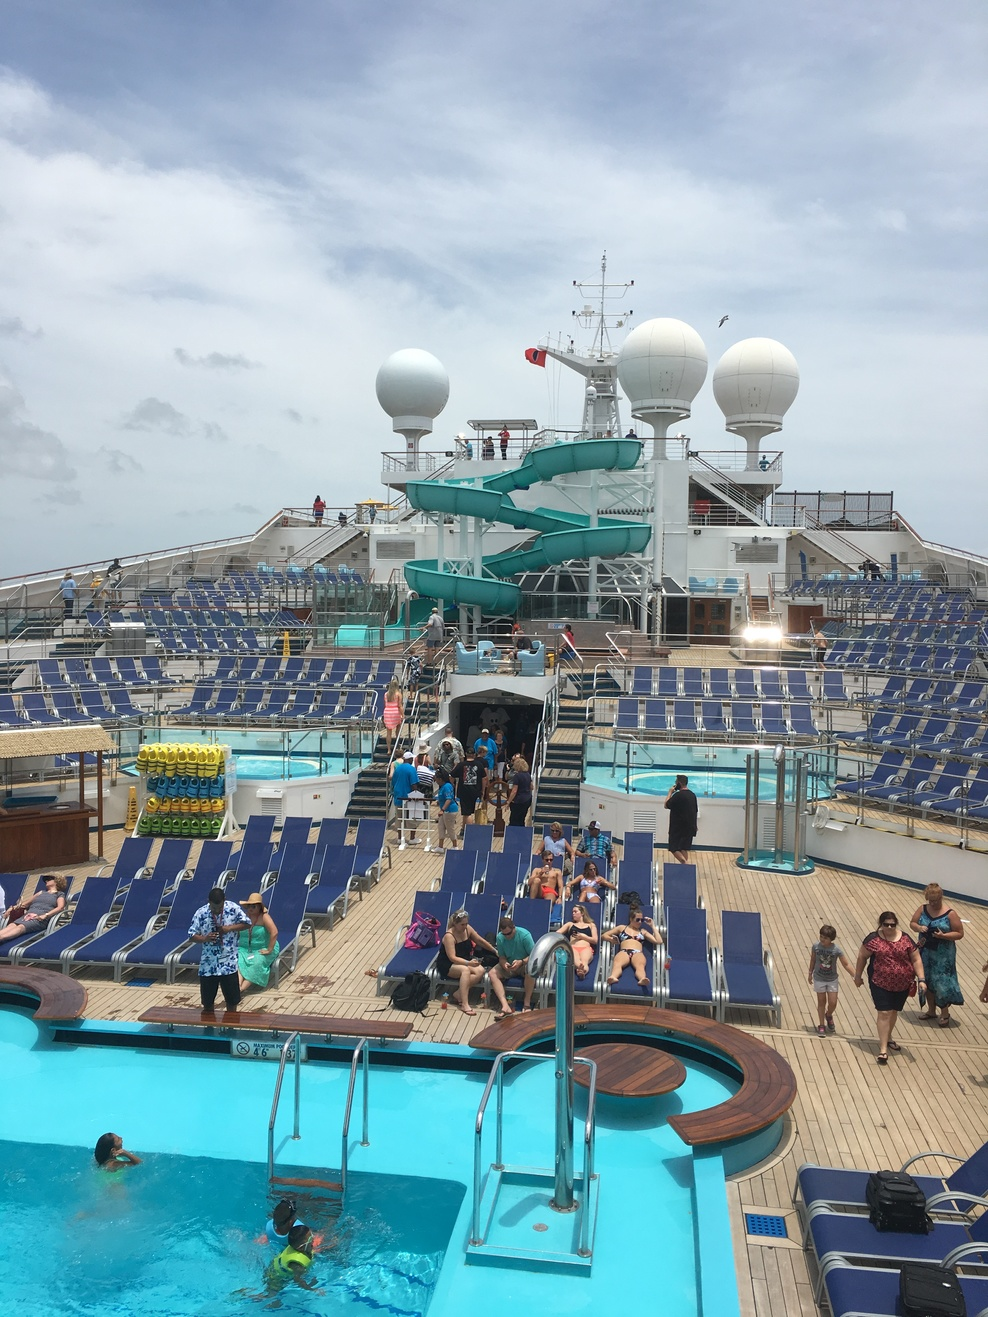 Pool Spa Fitness On Carnival Freedom Cruise Ship  Cruise Critic